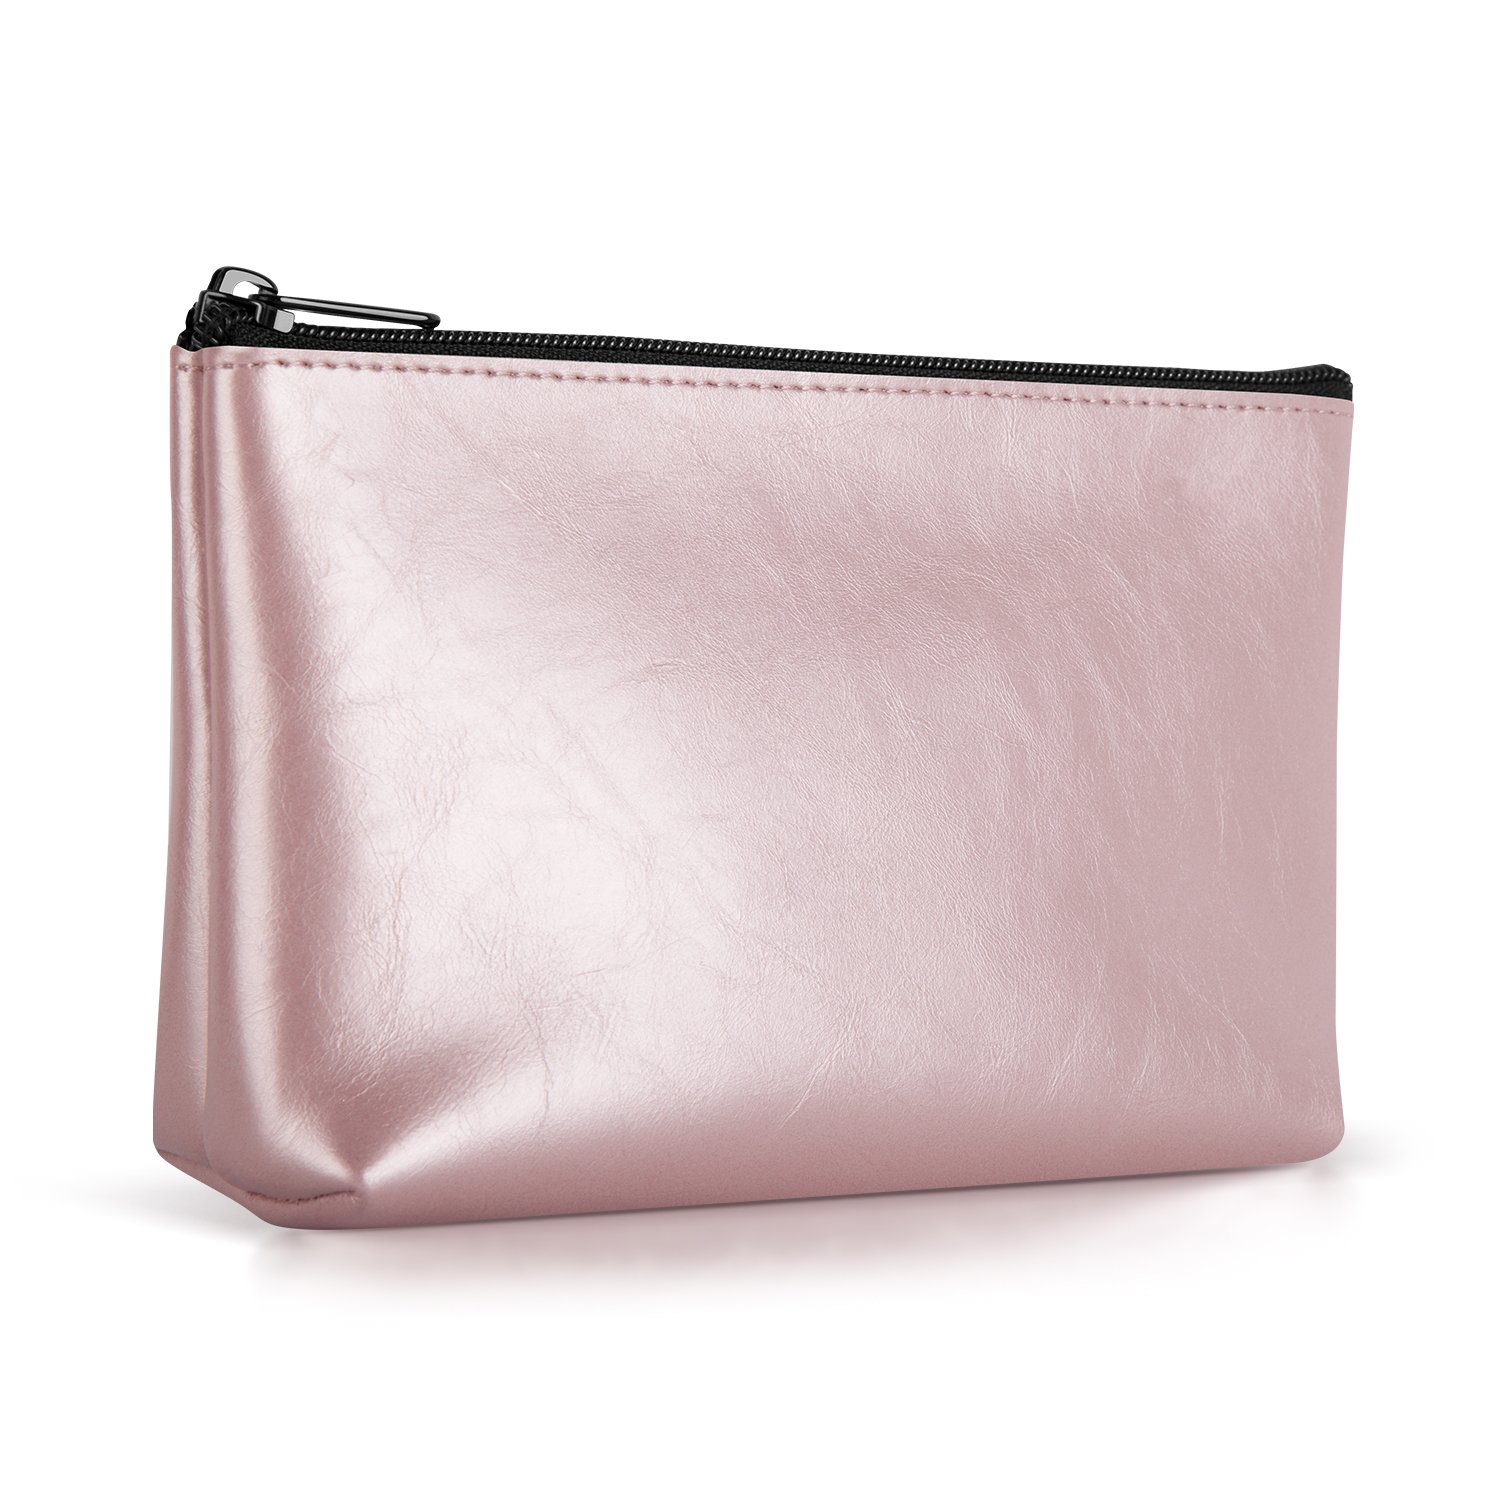 Ayotu PU Leather Lightweight Waterproof Portable Storage Pouch Bag Case Accessories Organizer, Electronics Accessory Travel Organize Case, Cable Management Hard Drive Bag - Rose gold